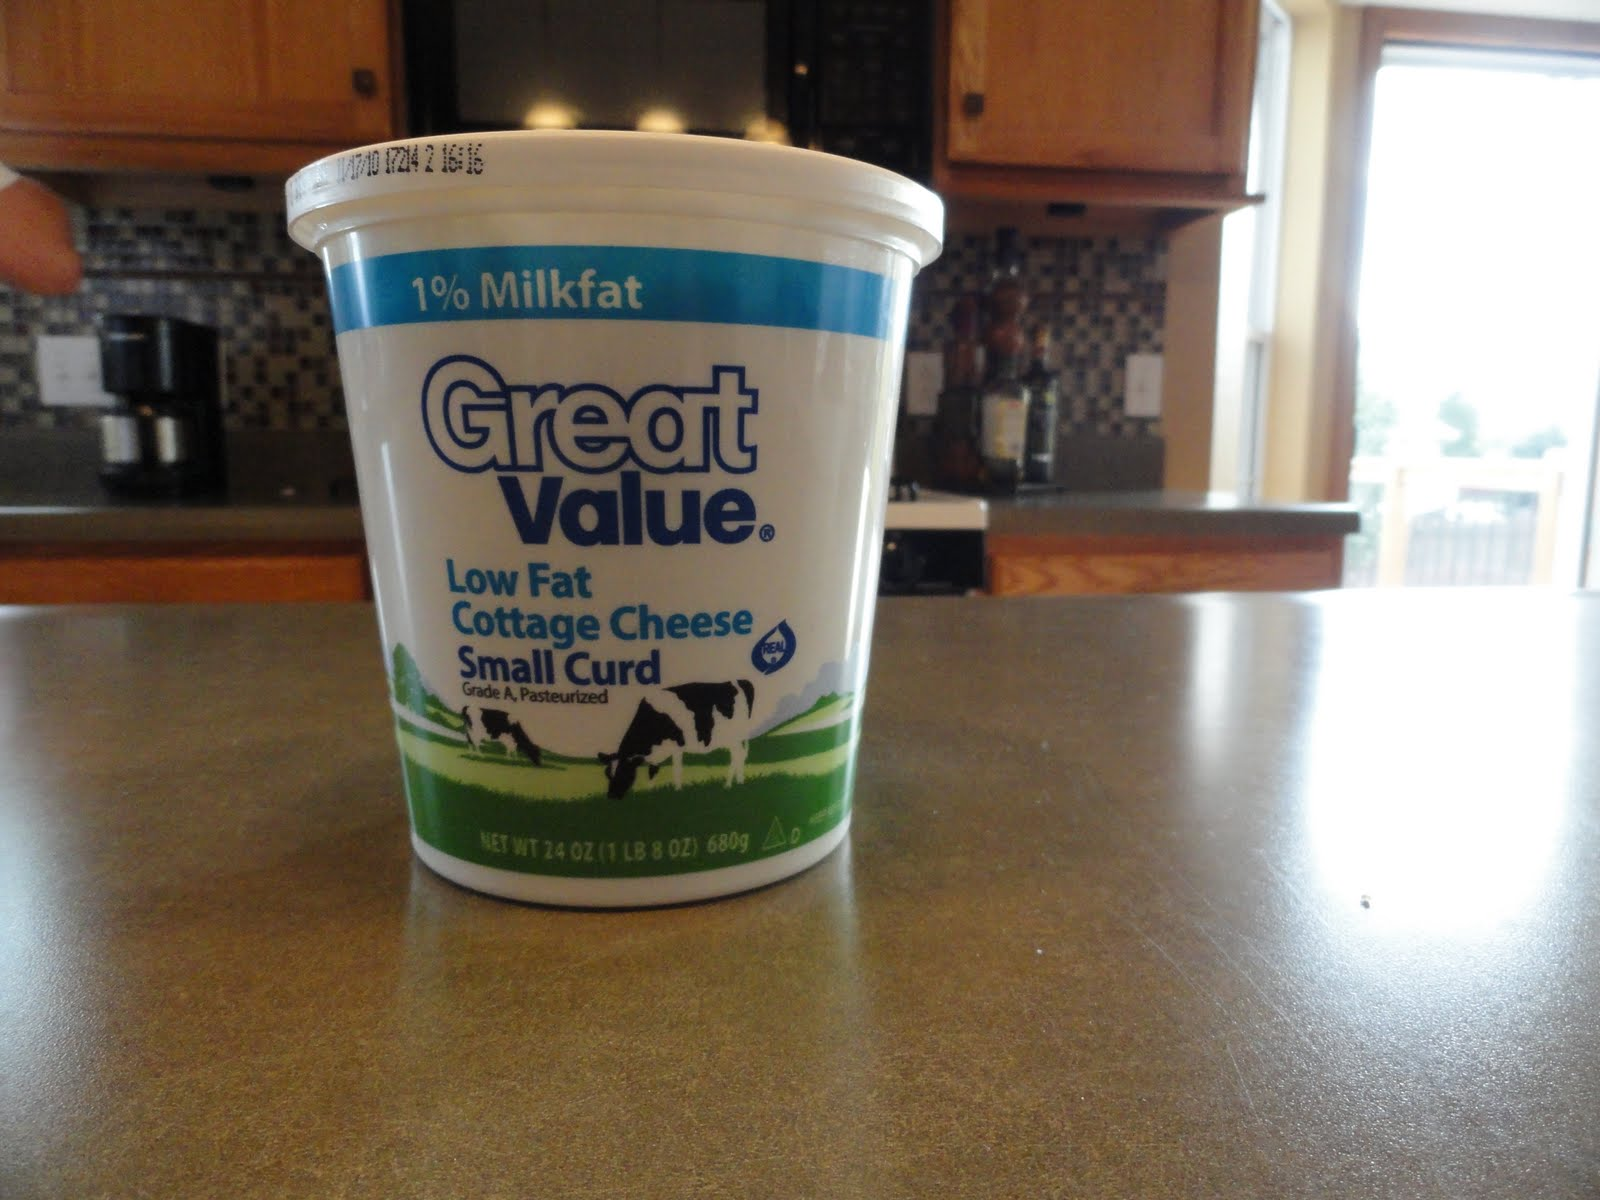 24 oz. container costs that is 6 servings for 1/2 cup or 4oz.